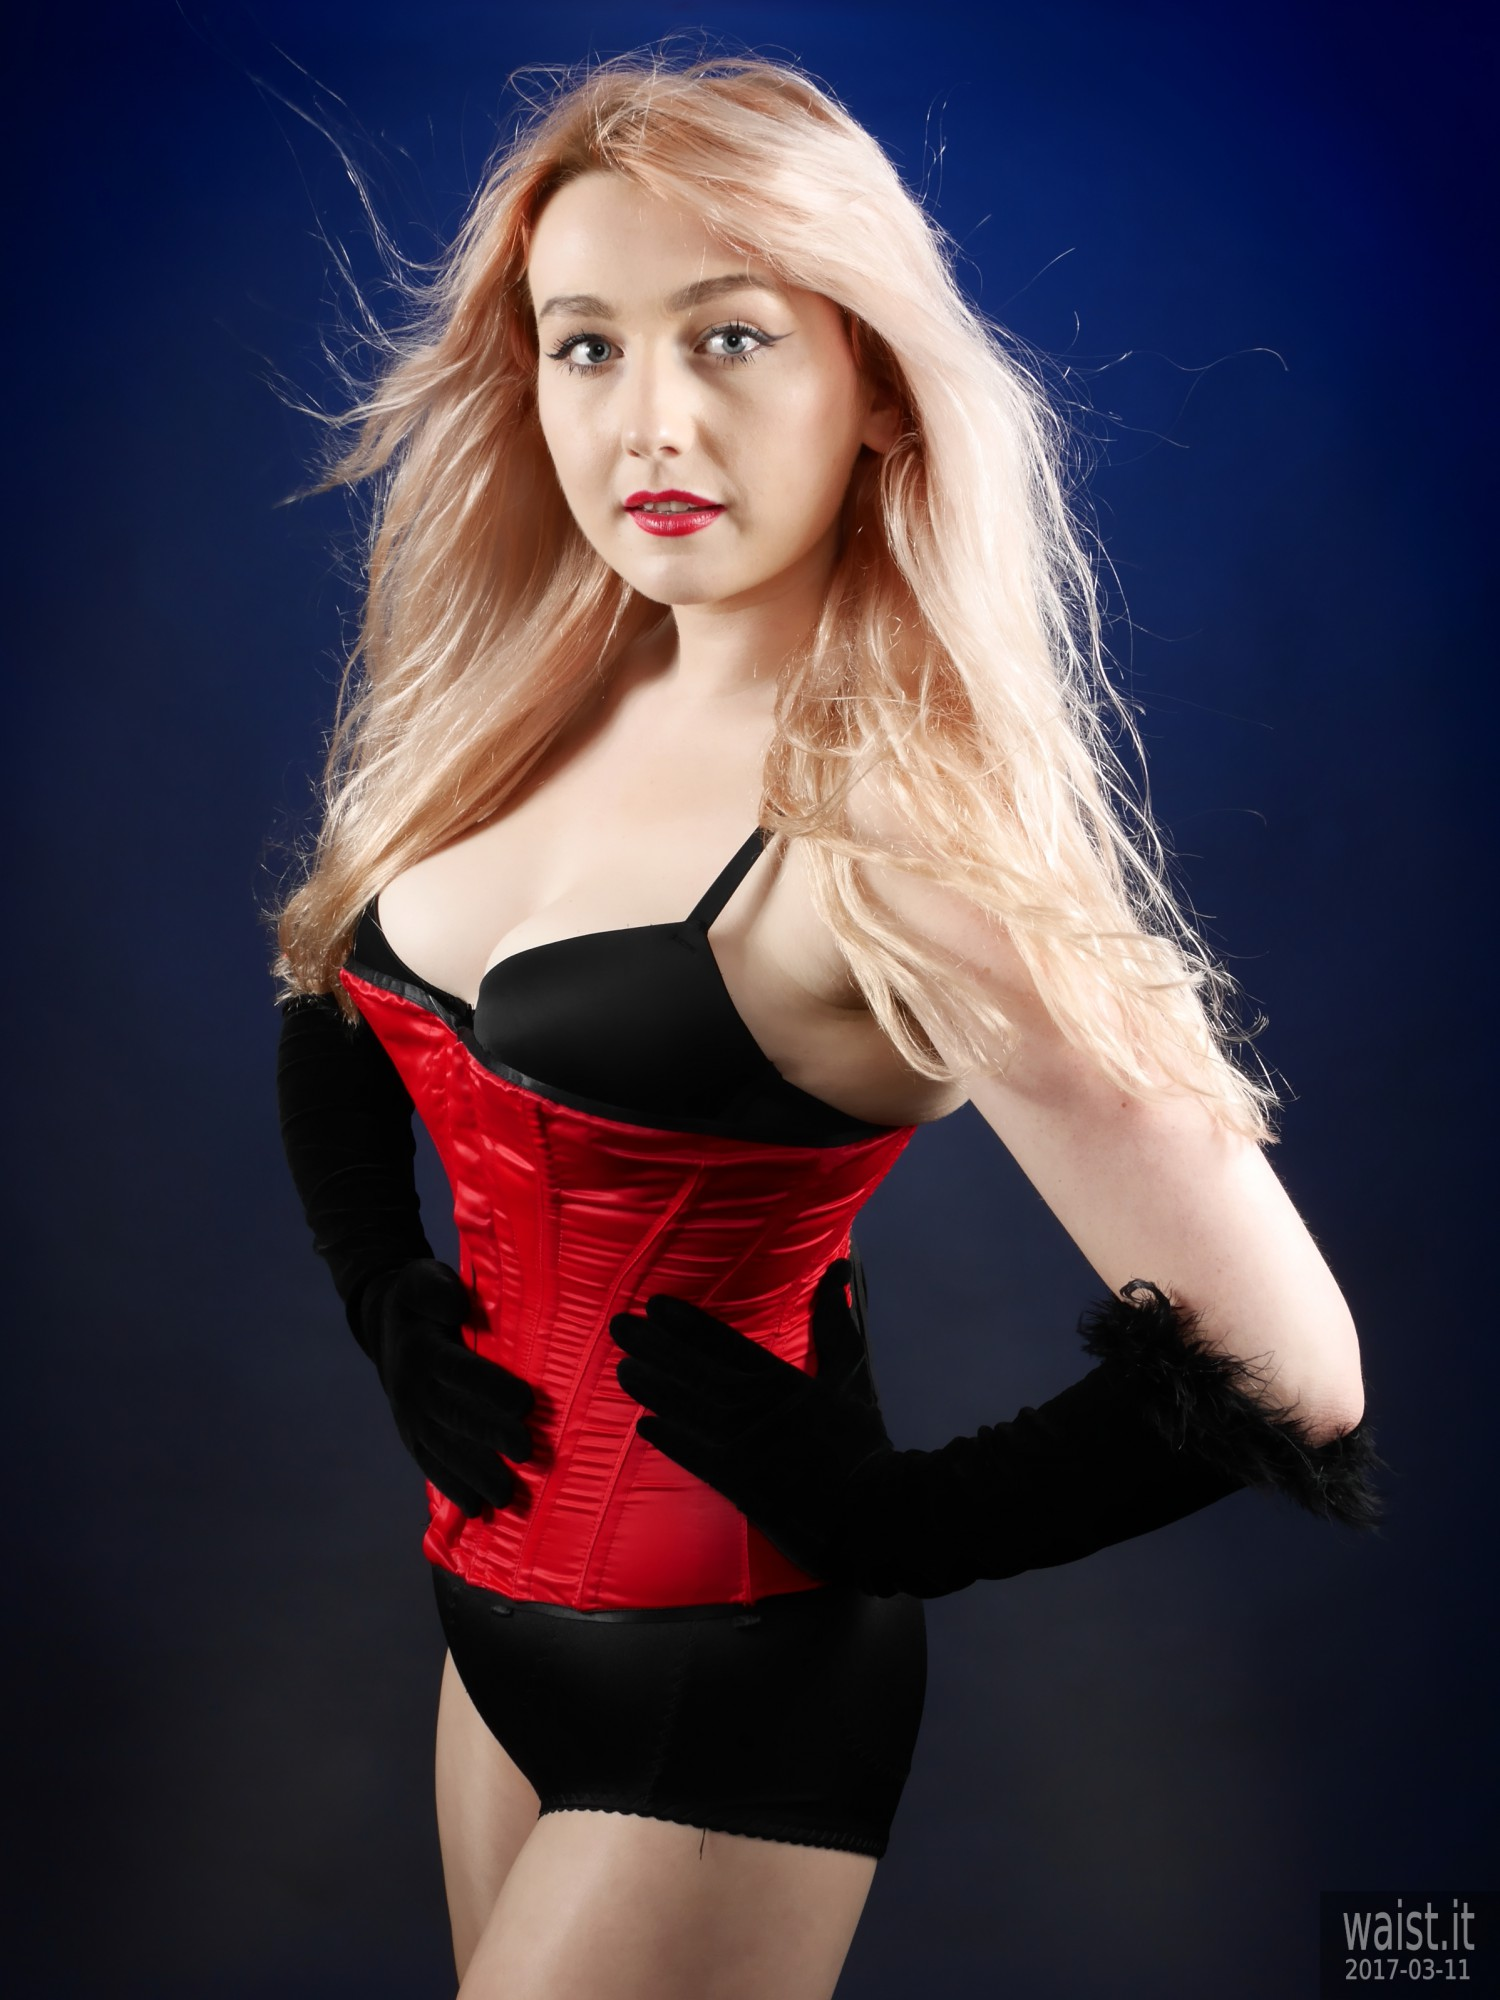 2017-03-11 LilyAmber bra,,style210 grdle and red Vollers overbust corset